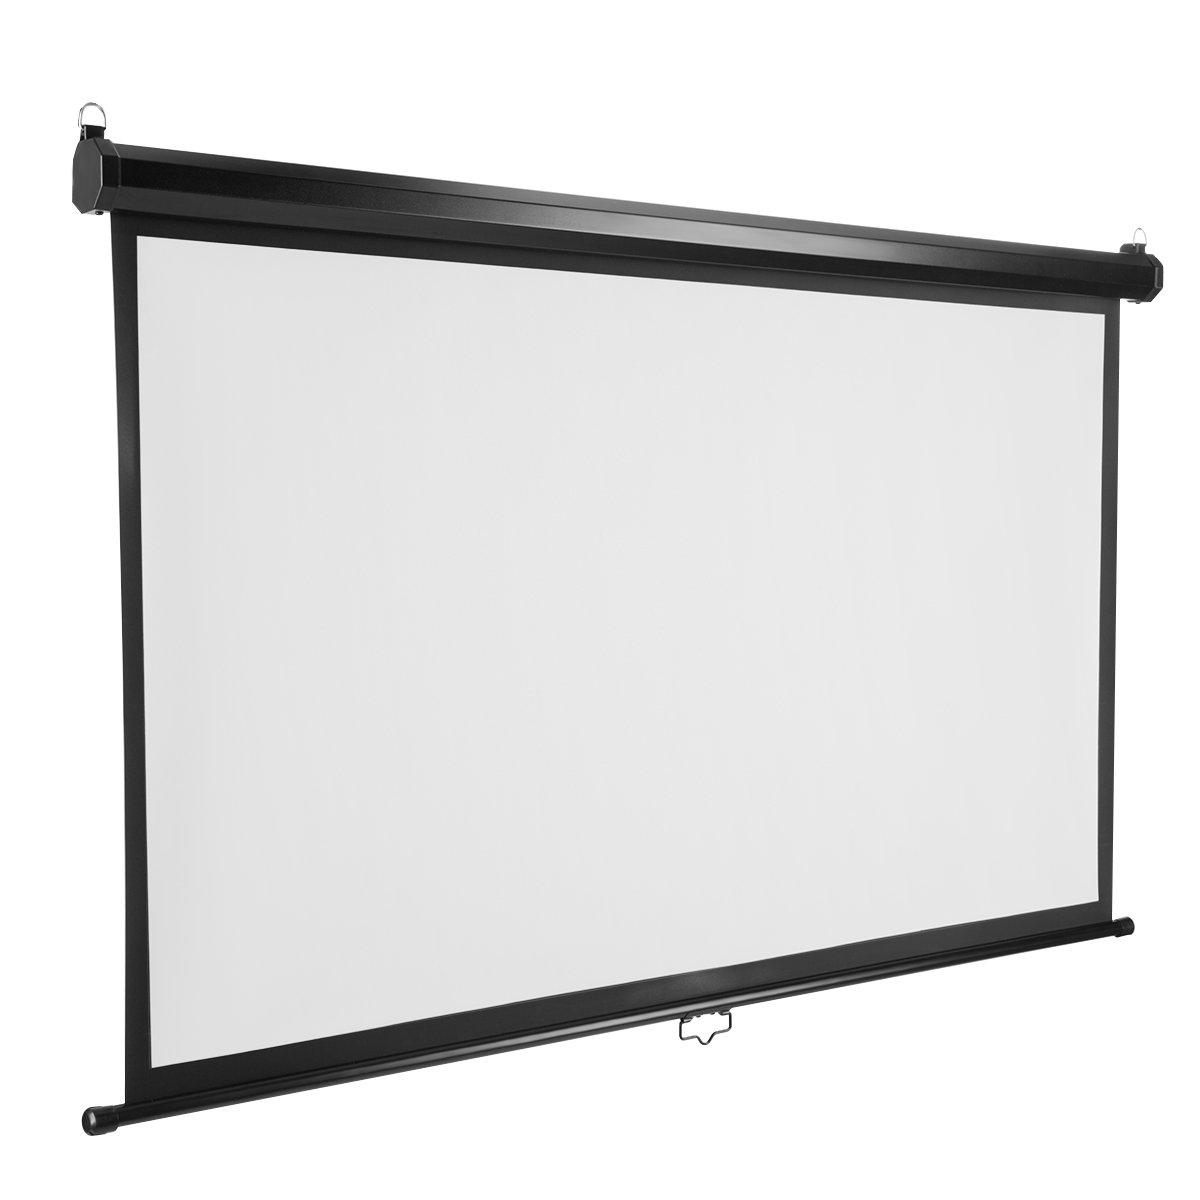 Excelvan Projector Screen 7 Pieces Velvet Fixed Frame Active Shutter 3D 4K HD Ultra Ready 1.2 Gain for Home Theater Home Cinema (120 inch Manual)